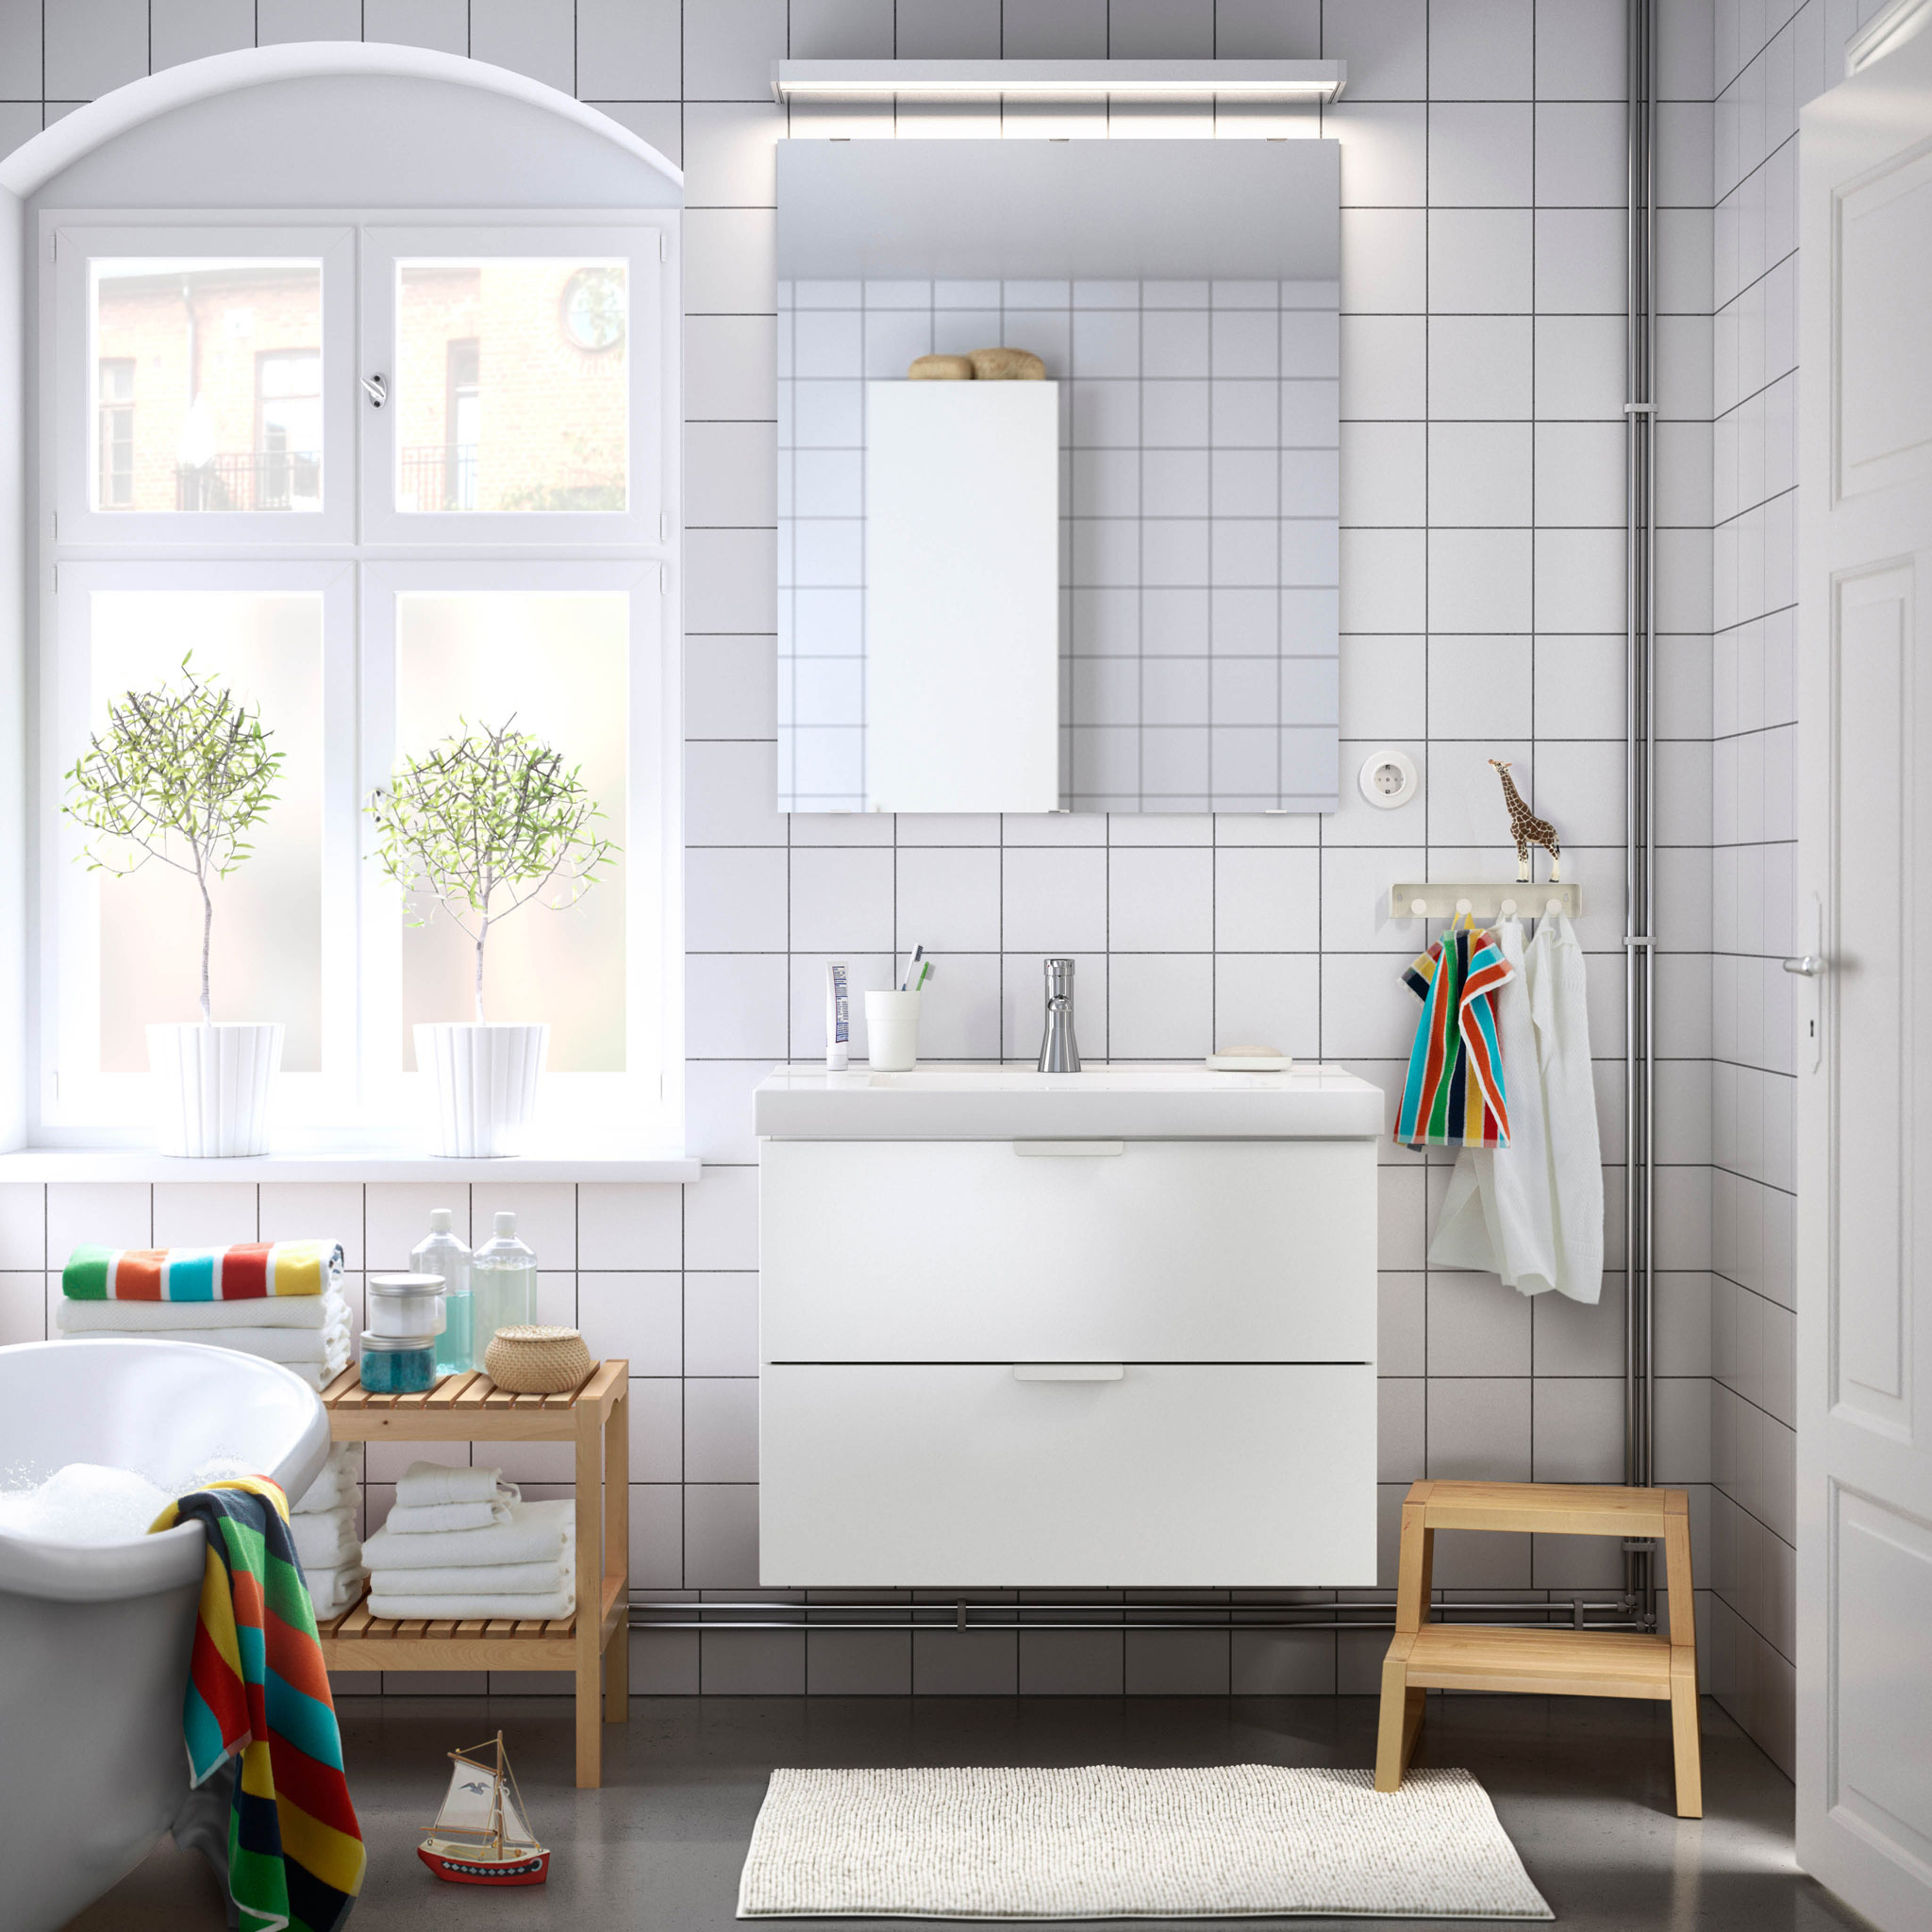 bathroom-simple-bathroom-interior-minimalist-scandinavian-simple-bathroom-scandinavian-l-7209679f9a8fd19f.jpg